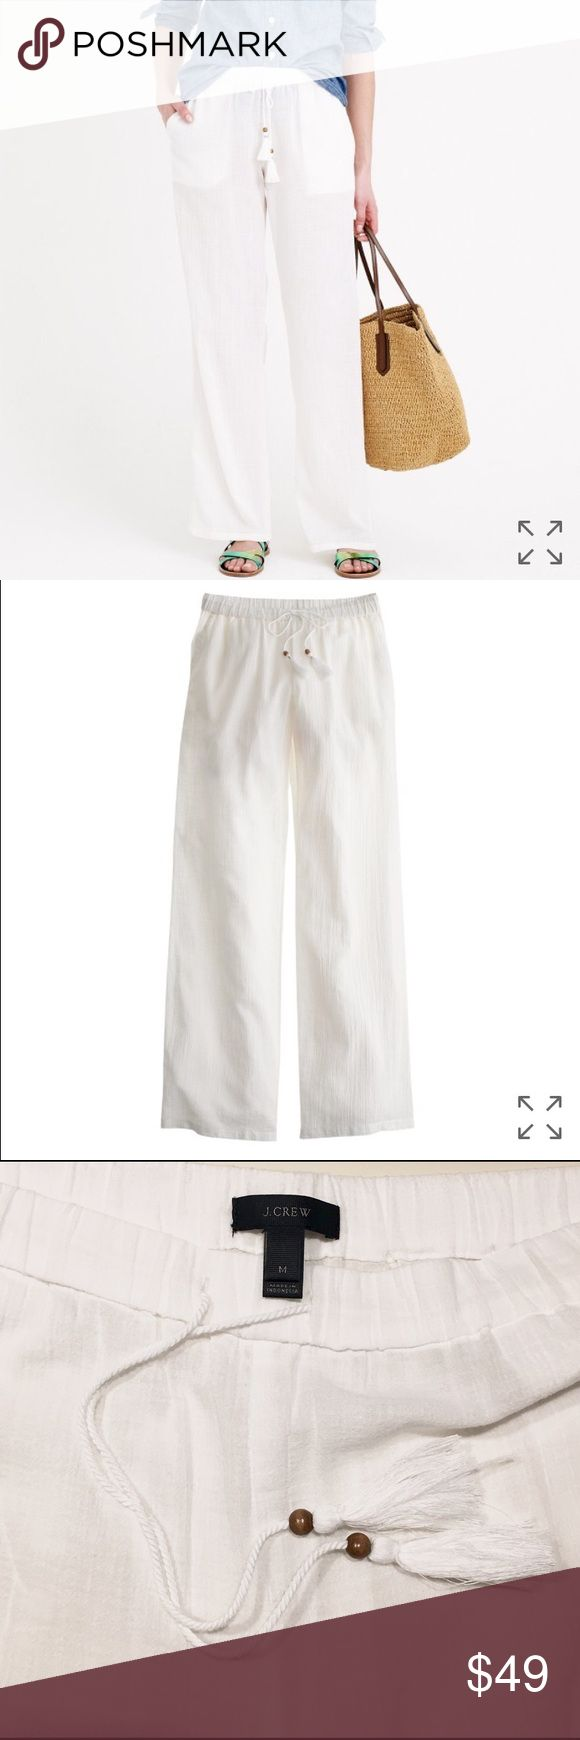 """J. Crew Gauze Cabana Beach Pant J. Crew cotton beach pants in white. Size Medium, worn once, great condition, no flaws or stains. J. Crew calls them your """"extra motivation to book that sunny getaway"""". Sheer cotton, elastic waistband with tassel drawstring. Inseam 32in. Sold out online! J. Crew Pants Wide Leg"""